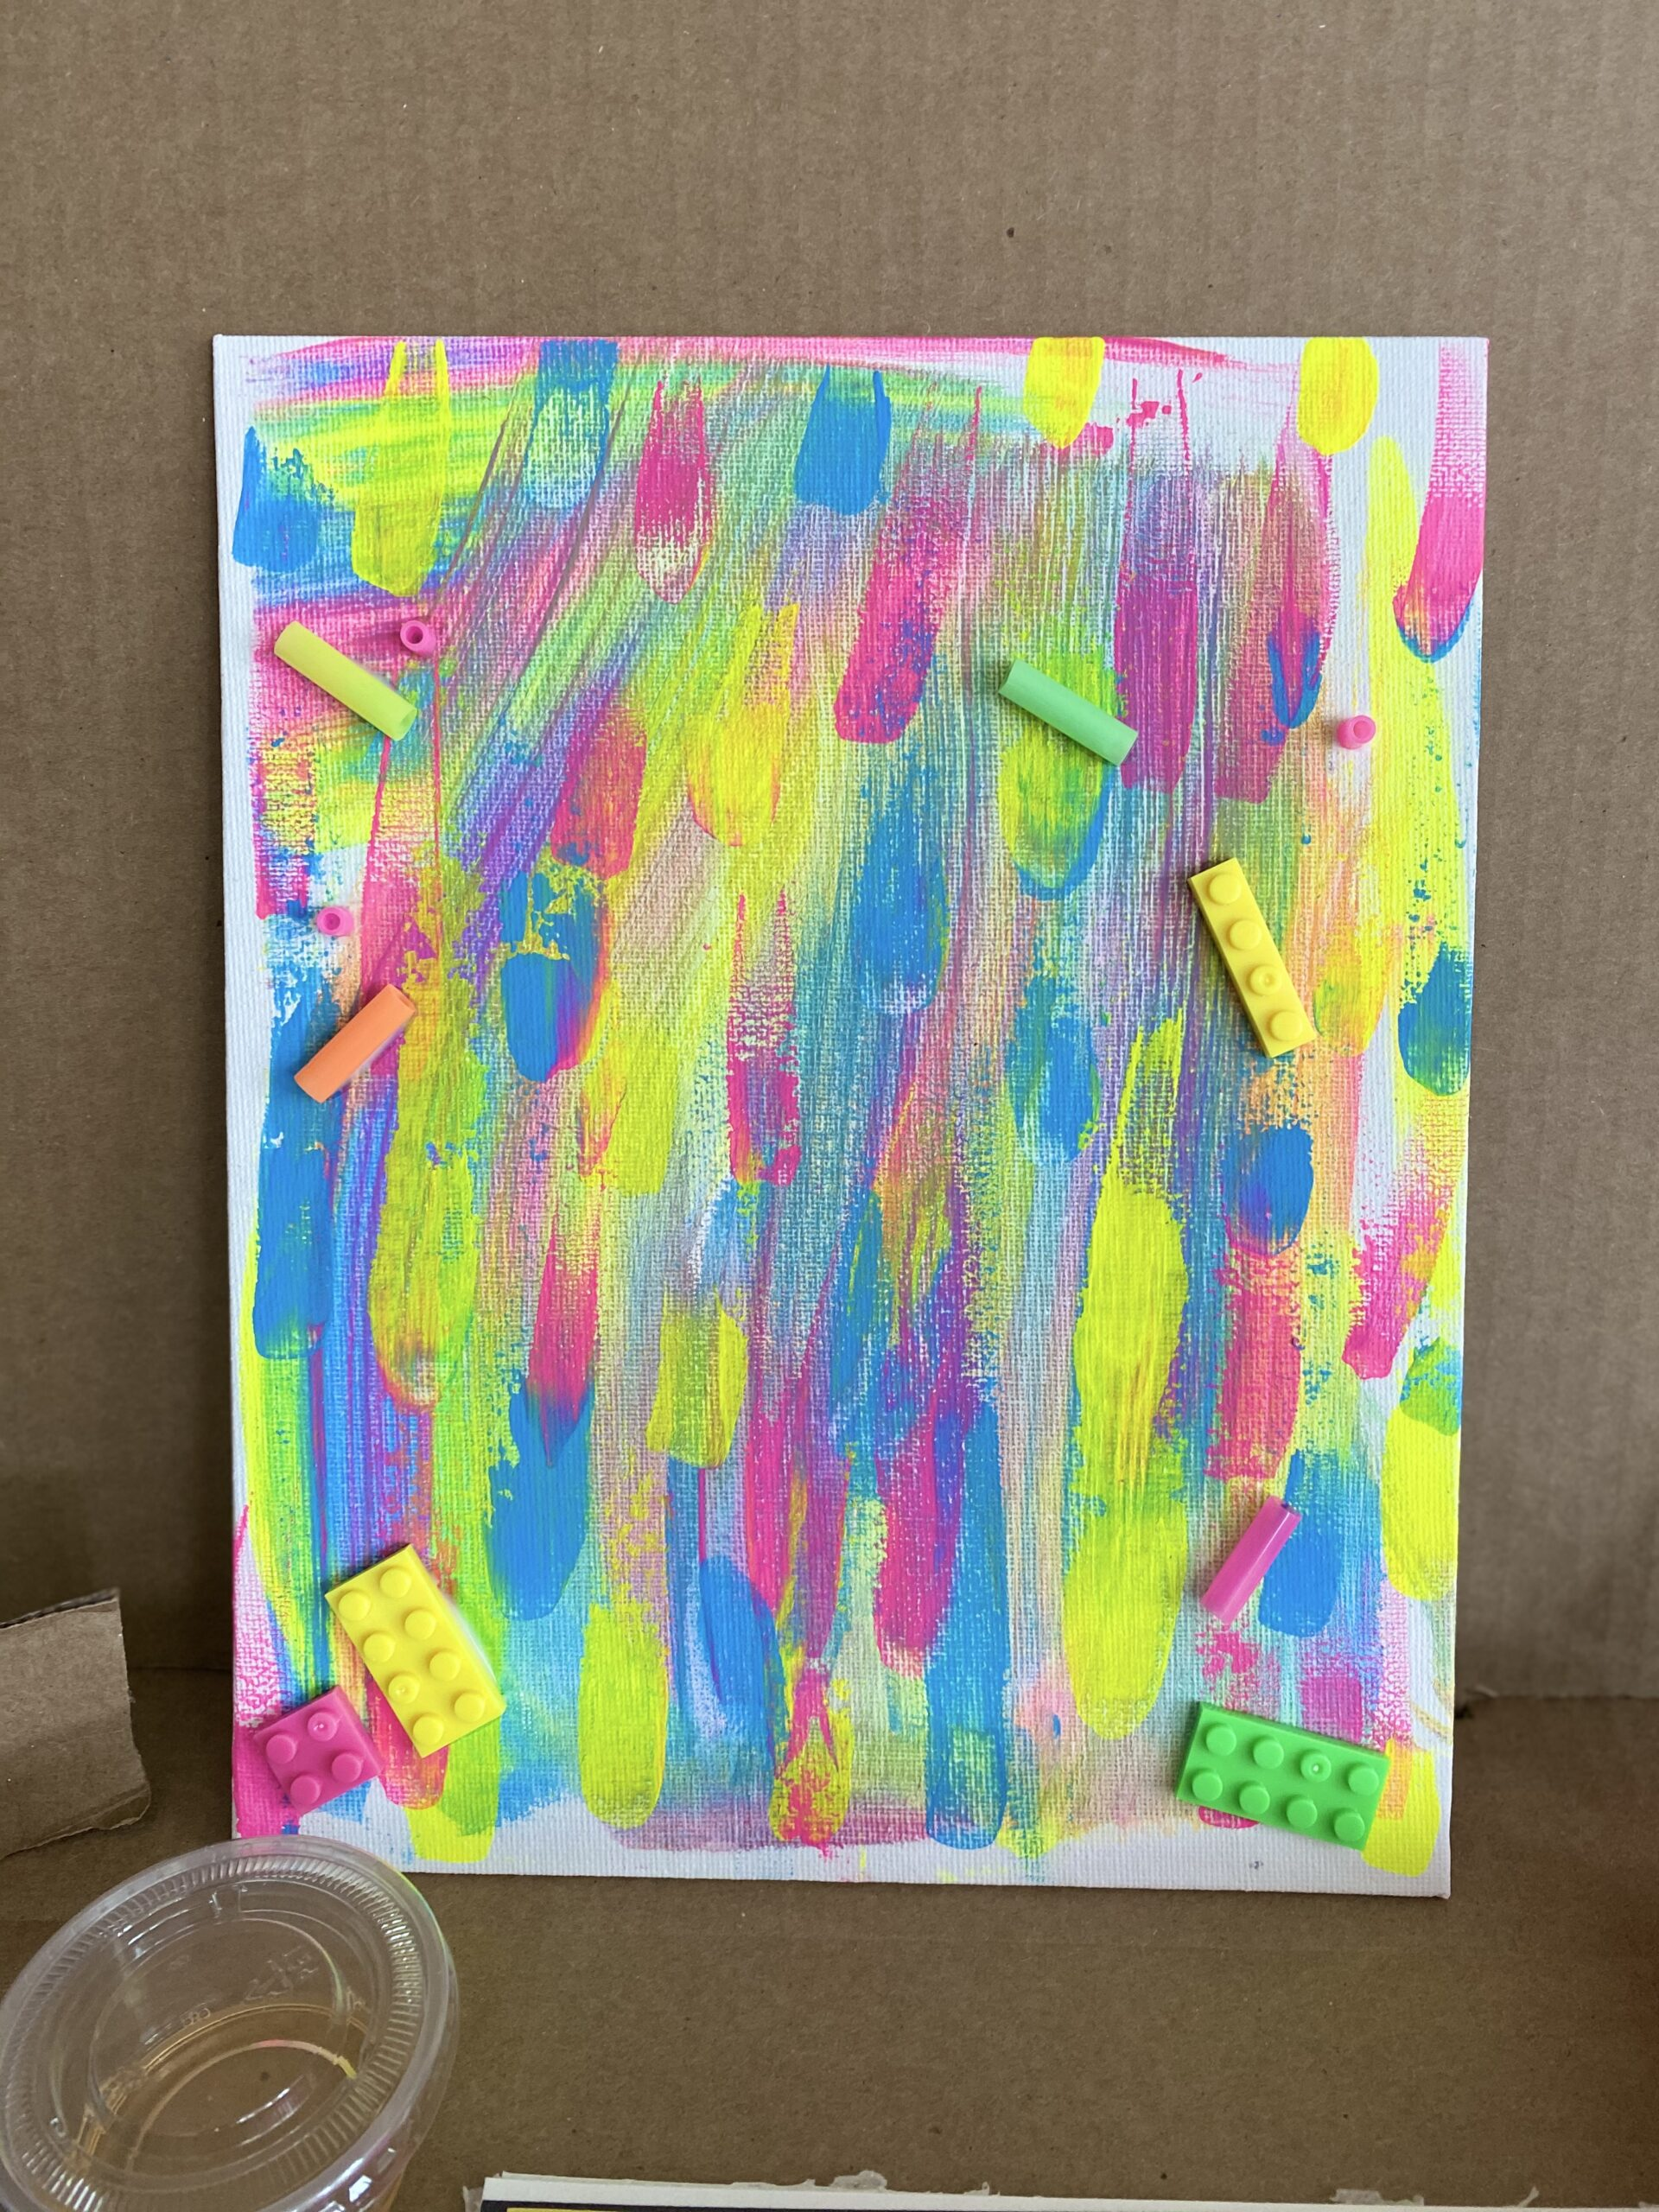 Abstract Canvas Art: creating process art projects that even glow in the blacklight.